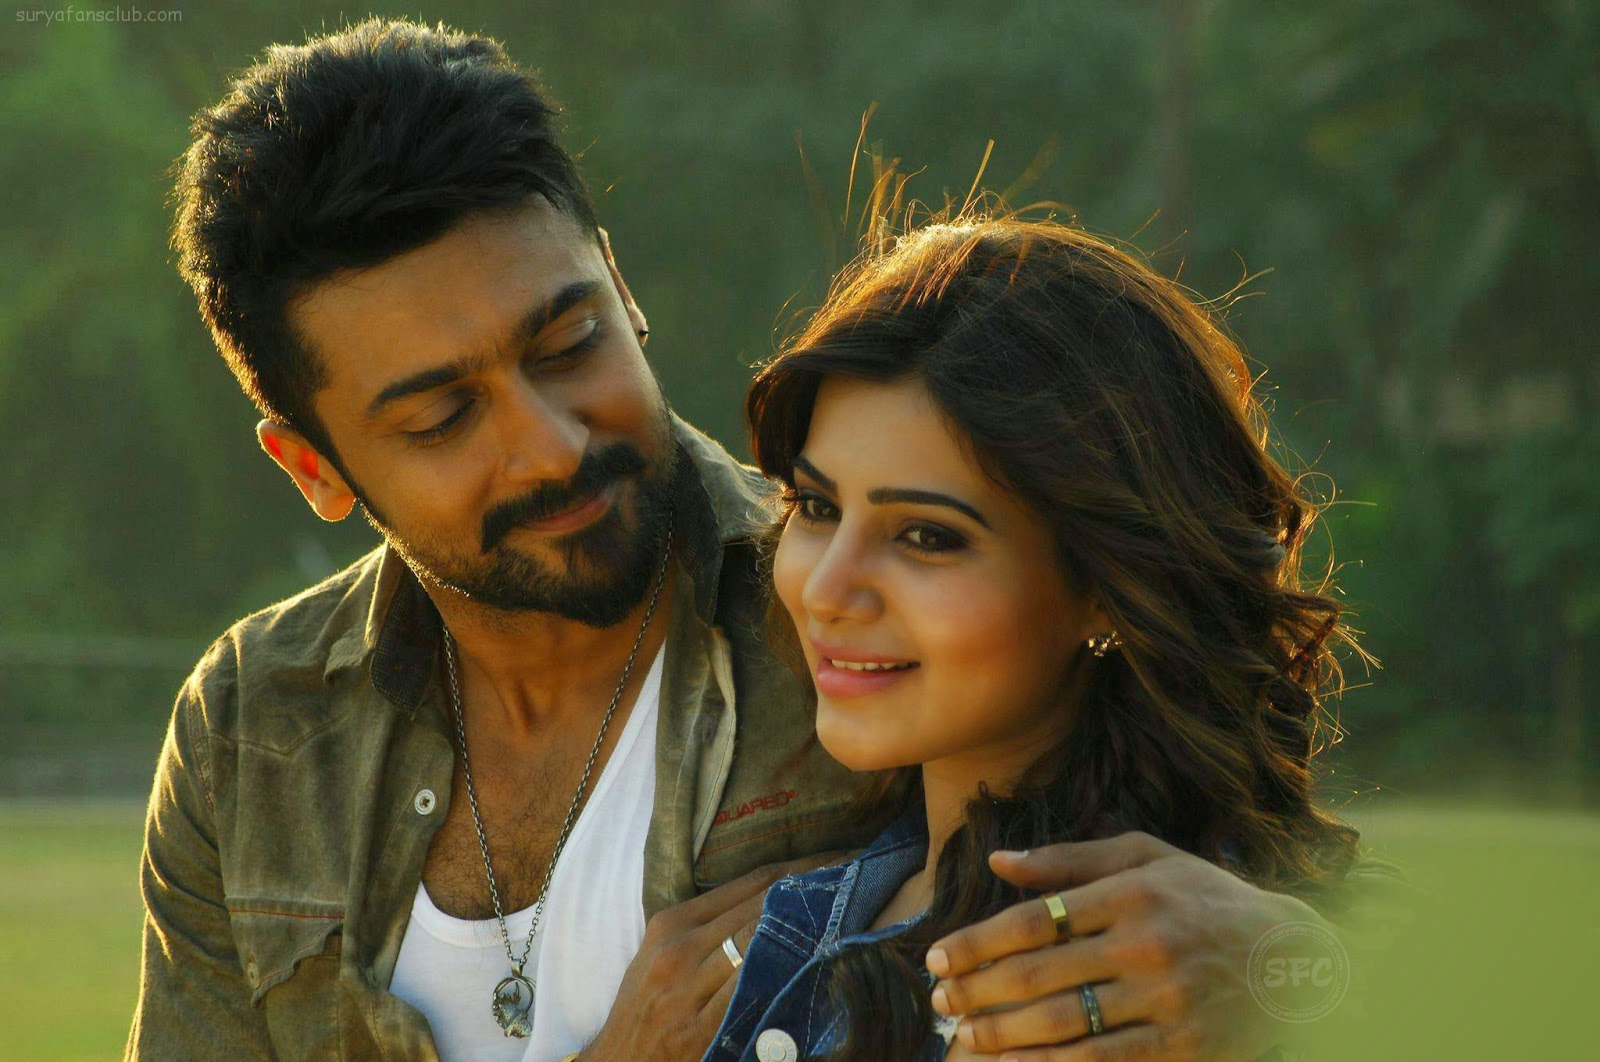 Suriya Sikandar Movie Stills In Hd: COOGLED: SURYA SAMANTHA ANJAAN MOVIE LATEST UNSEEN HD STILLS